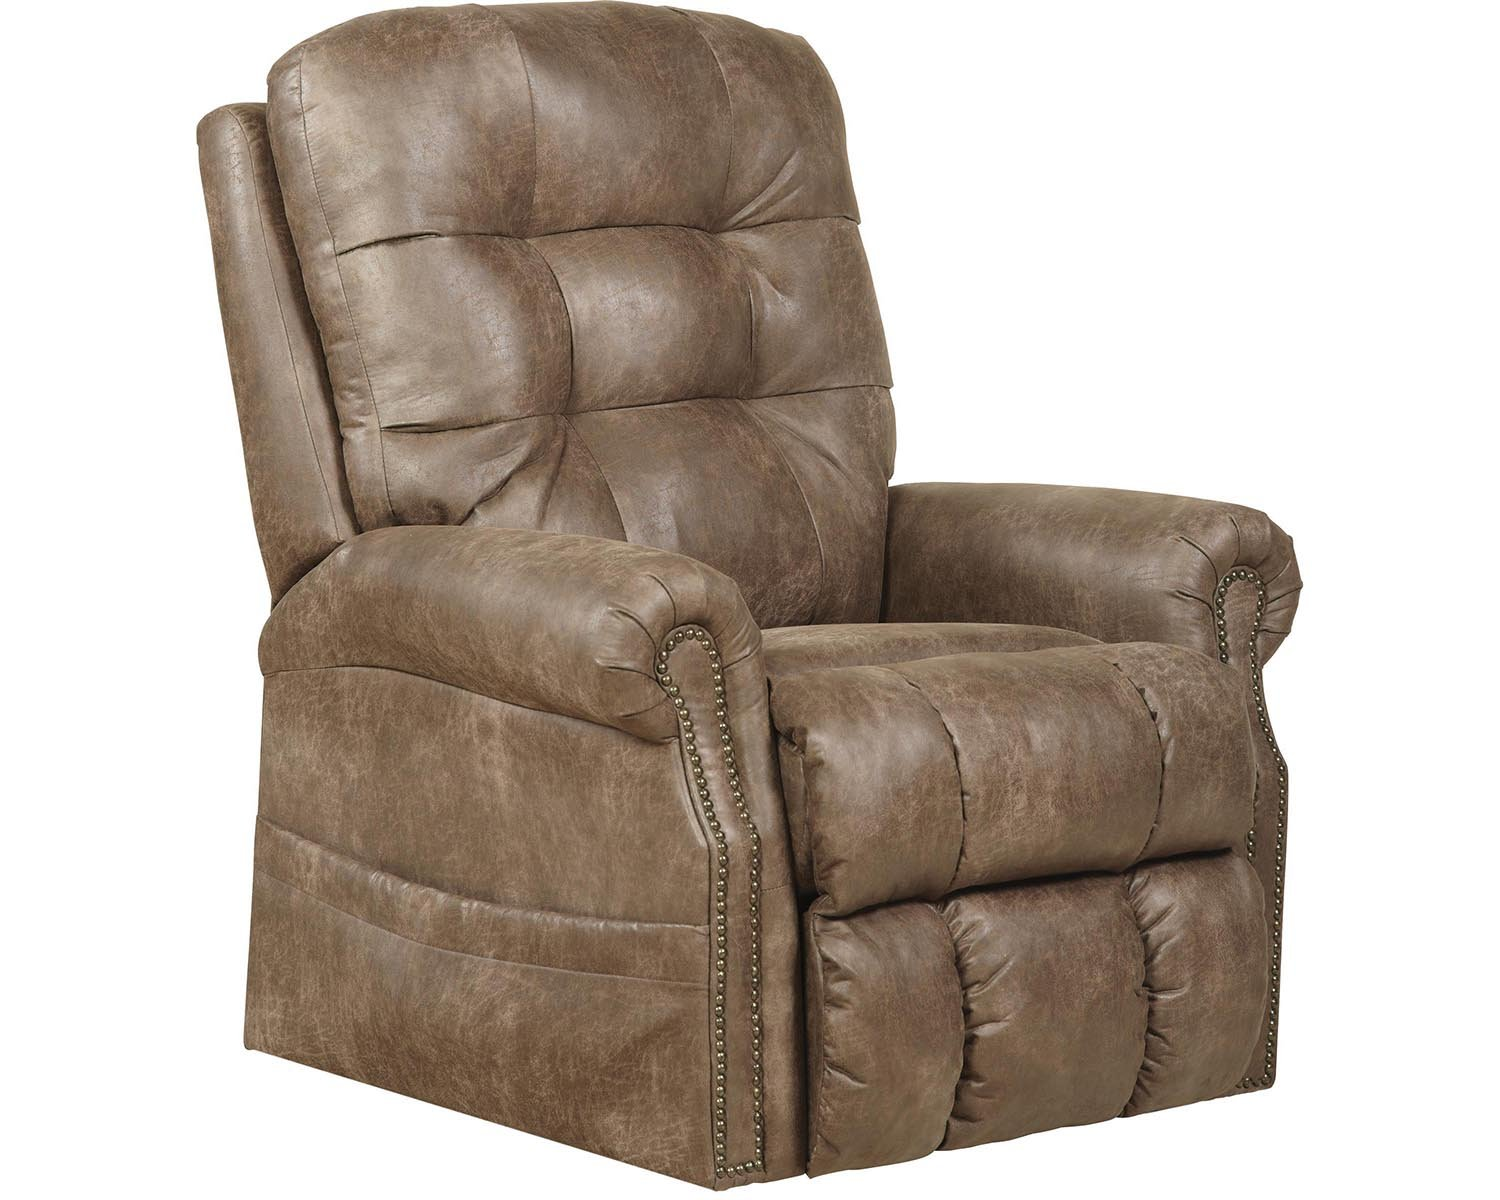 Amazon.com Catnapper Ramsey 4857 Power Full Lay Flat Lift Chair Recliner with Heat and Massage - Easy Care Faux Leather Vinyl - Silt Kitchen \u0026 Dining  sc 1 st  Amazon.com & Amazon.com: Catnapper Ramsey 4857 Power Full Lay Flat Lift Chair ... islam-shia.org